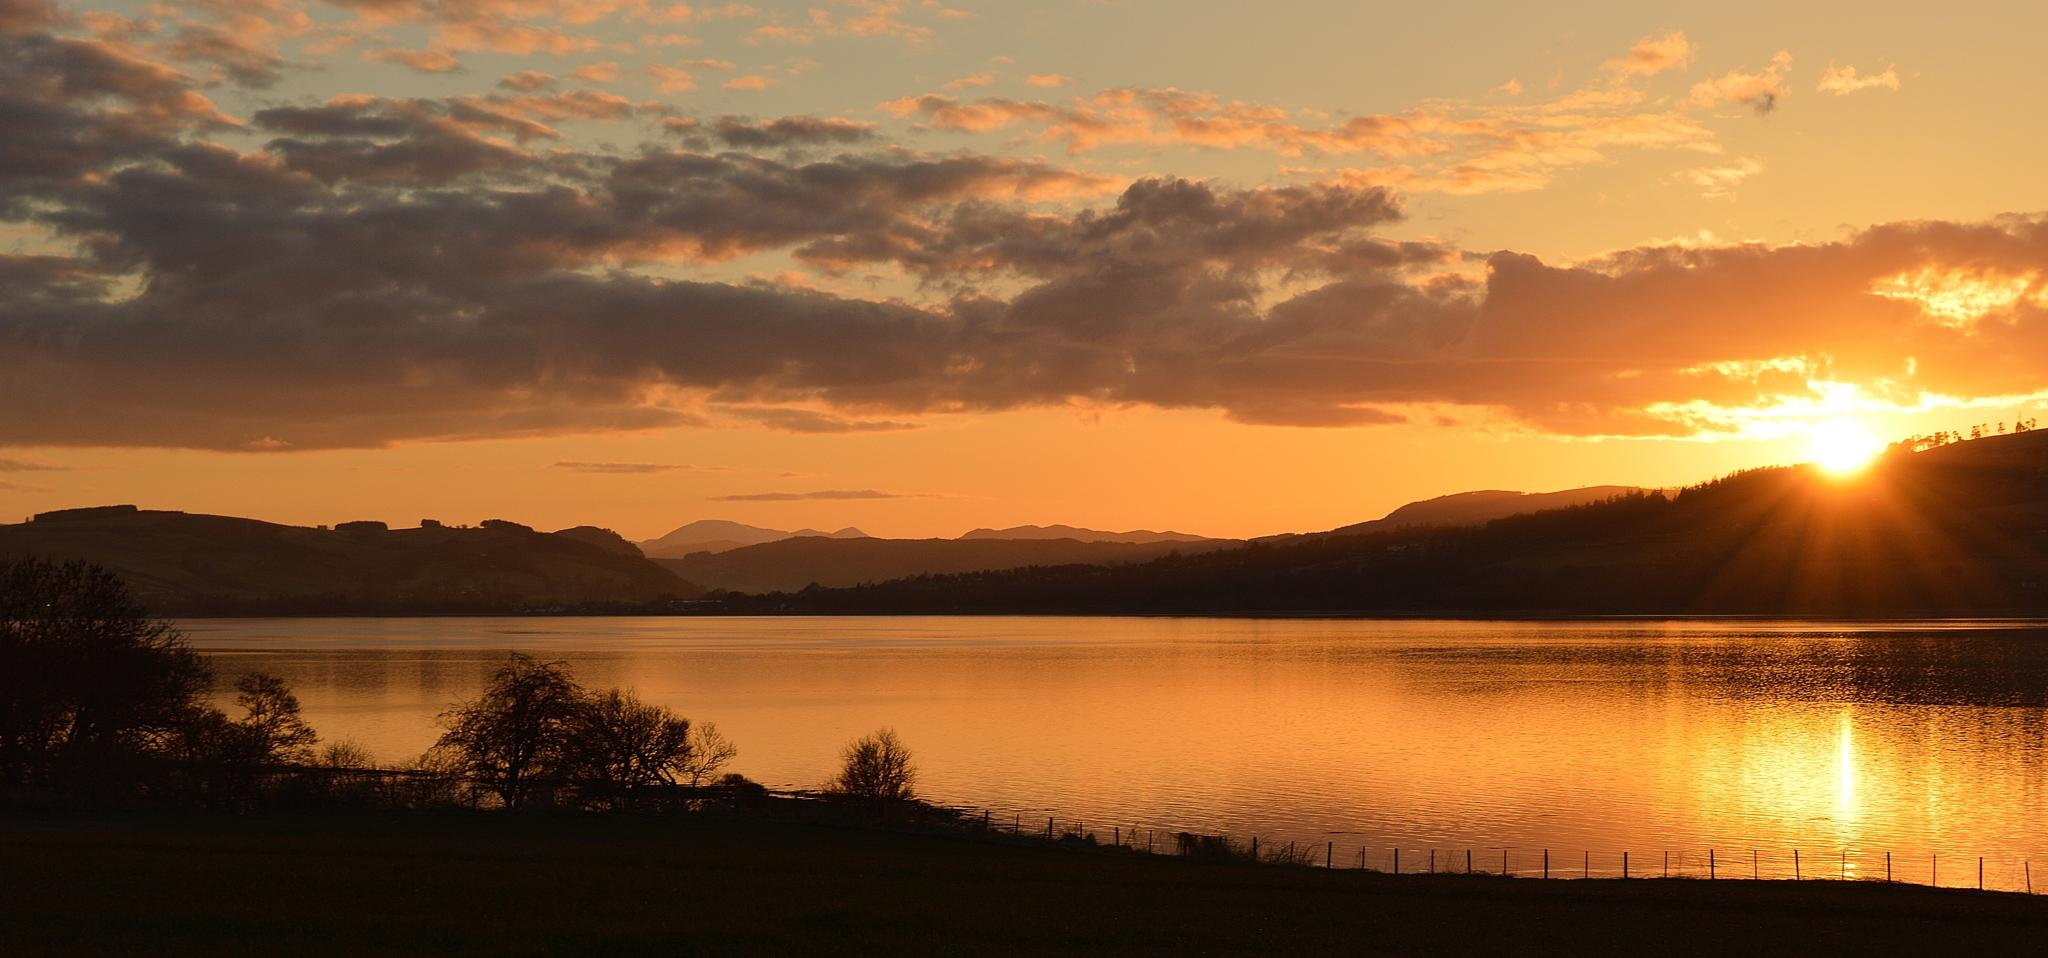 Sunset on the Cromarty Firth by garybr66